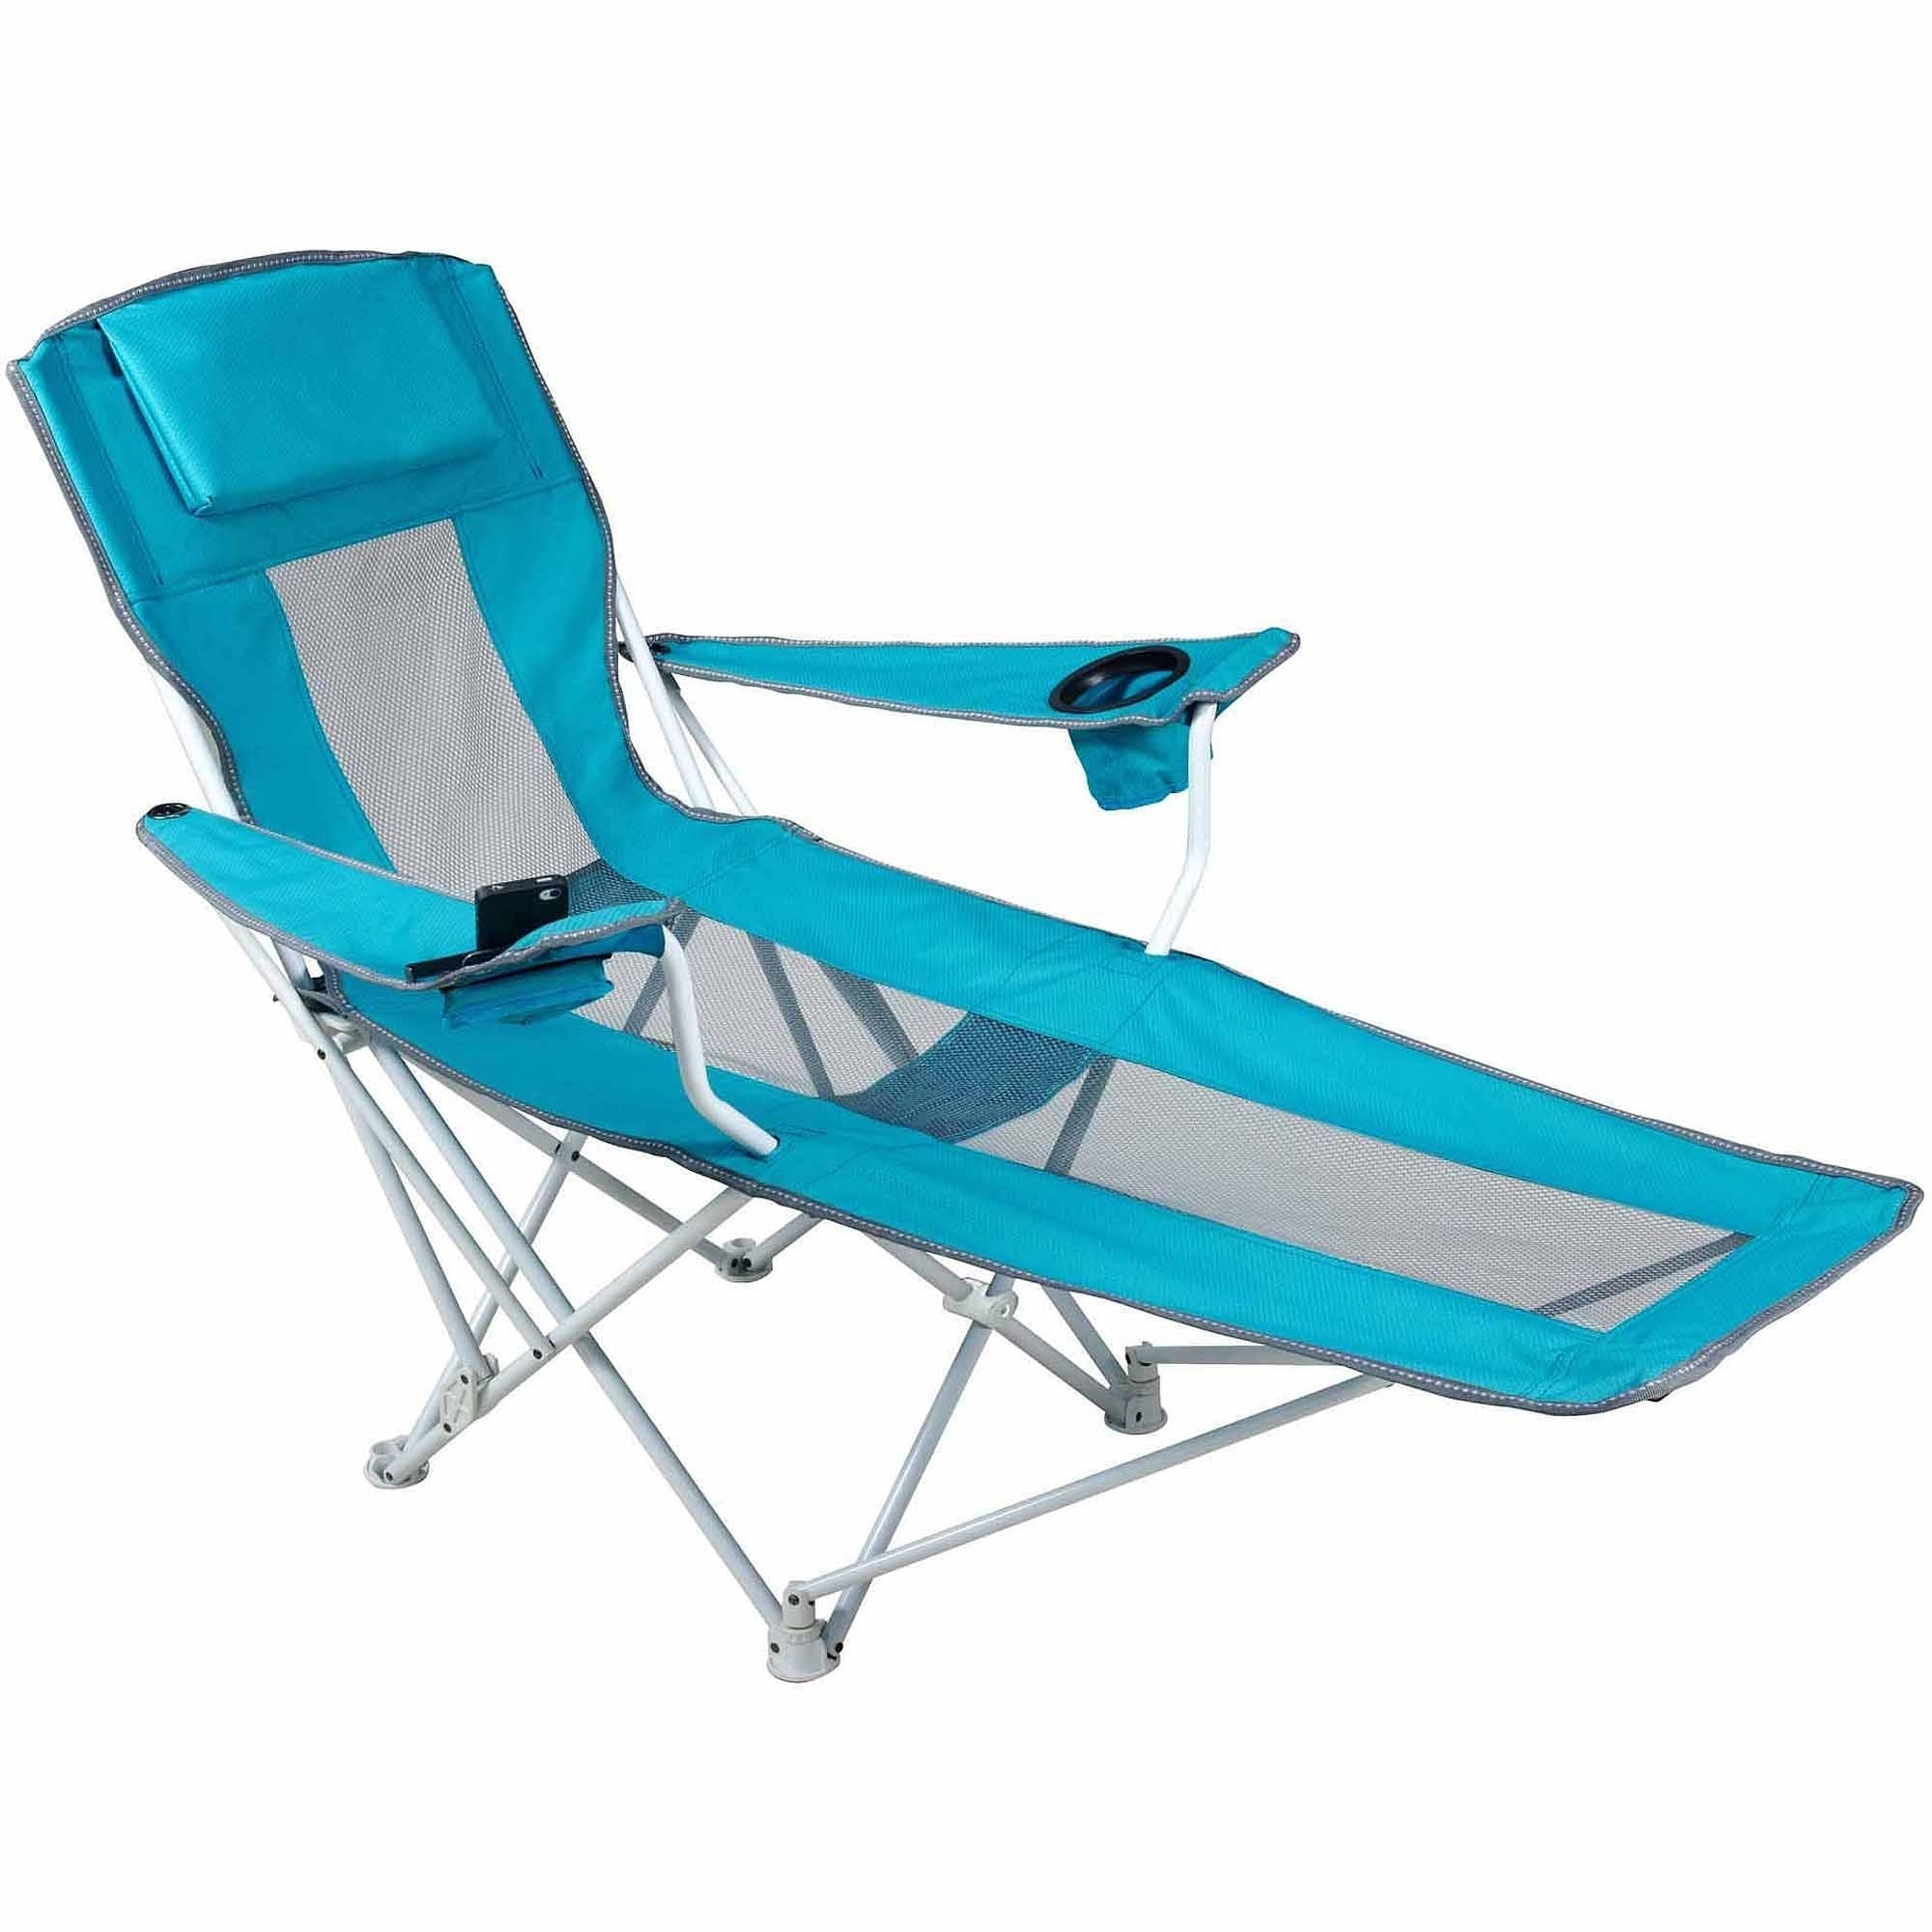 Chaise Lounge Beach Chairs In Well Known Outdoor : Beach Lounge Chair Beach Chairs Walmart Lounge Sofa Big (View 9 of 15)